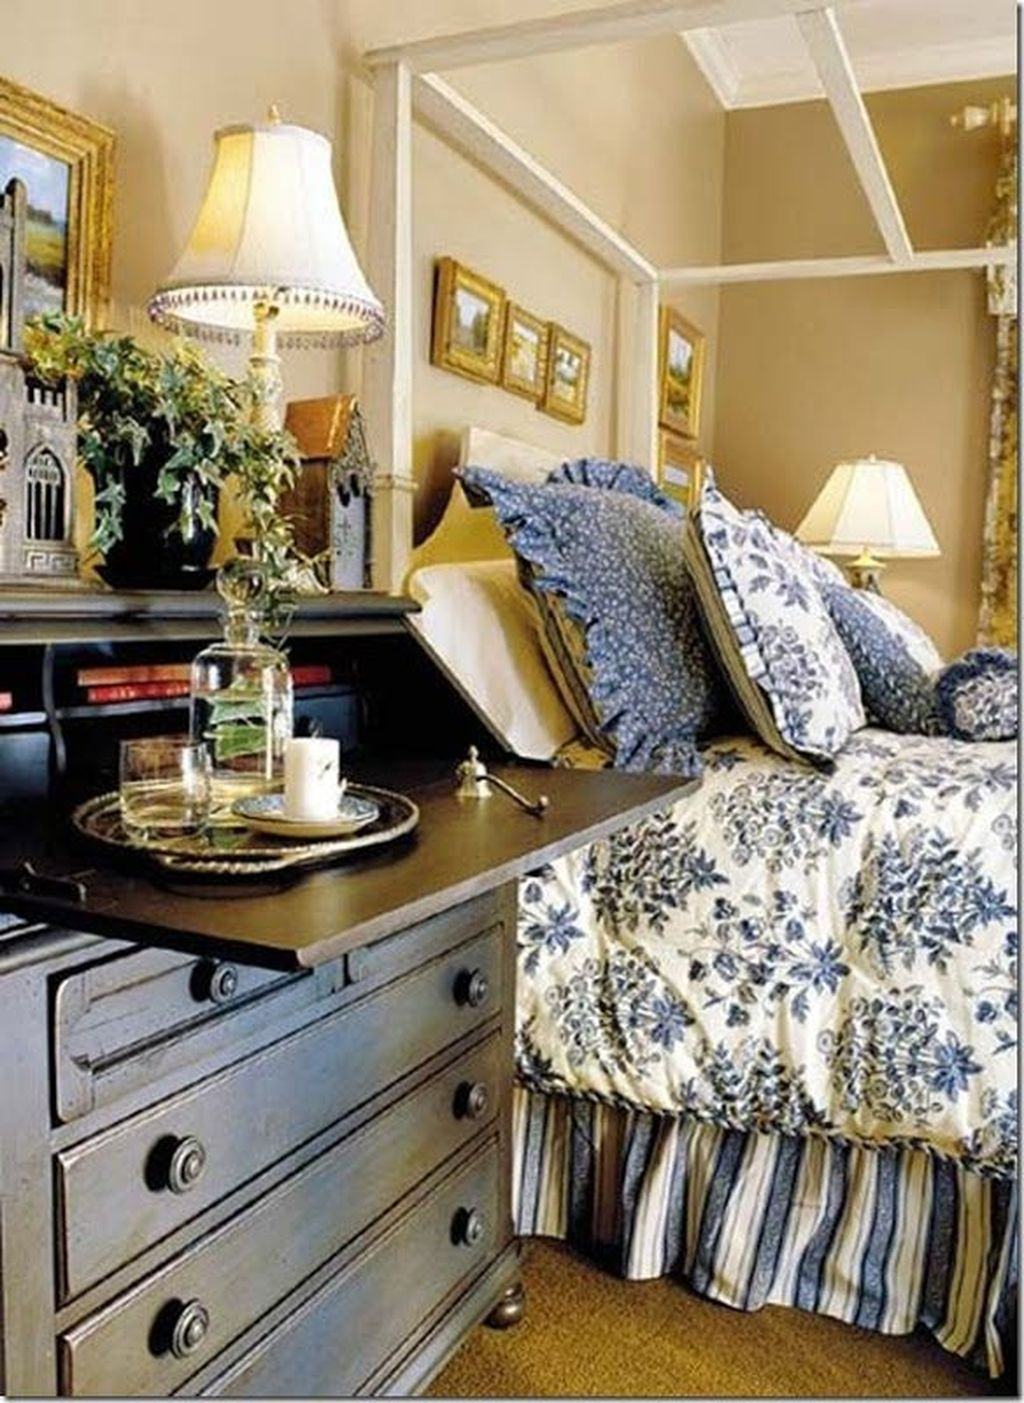 Stunning French Bedroom Decor Ideas That Will Inspire You 18